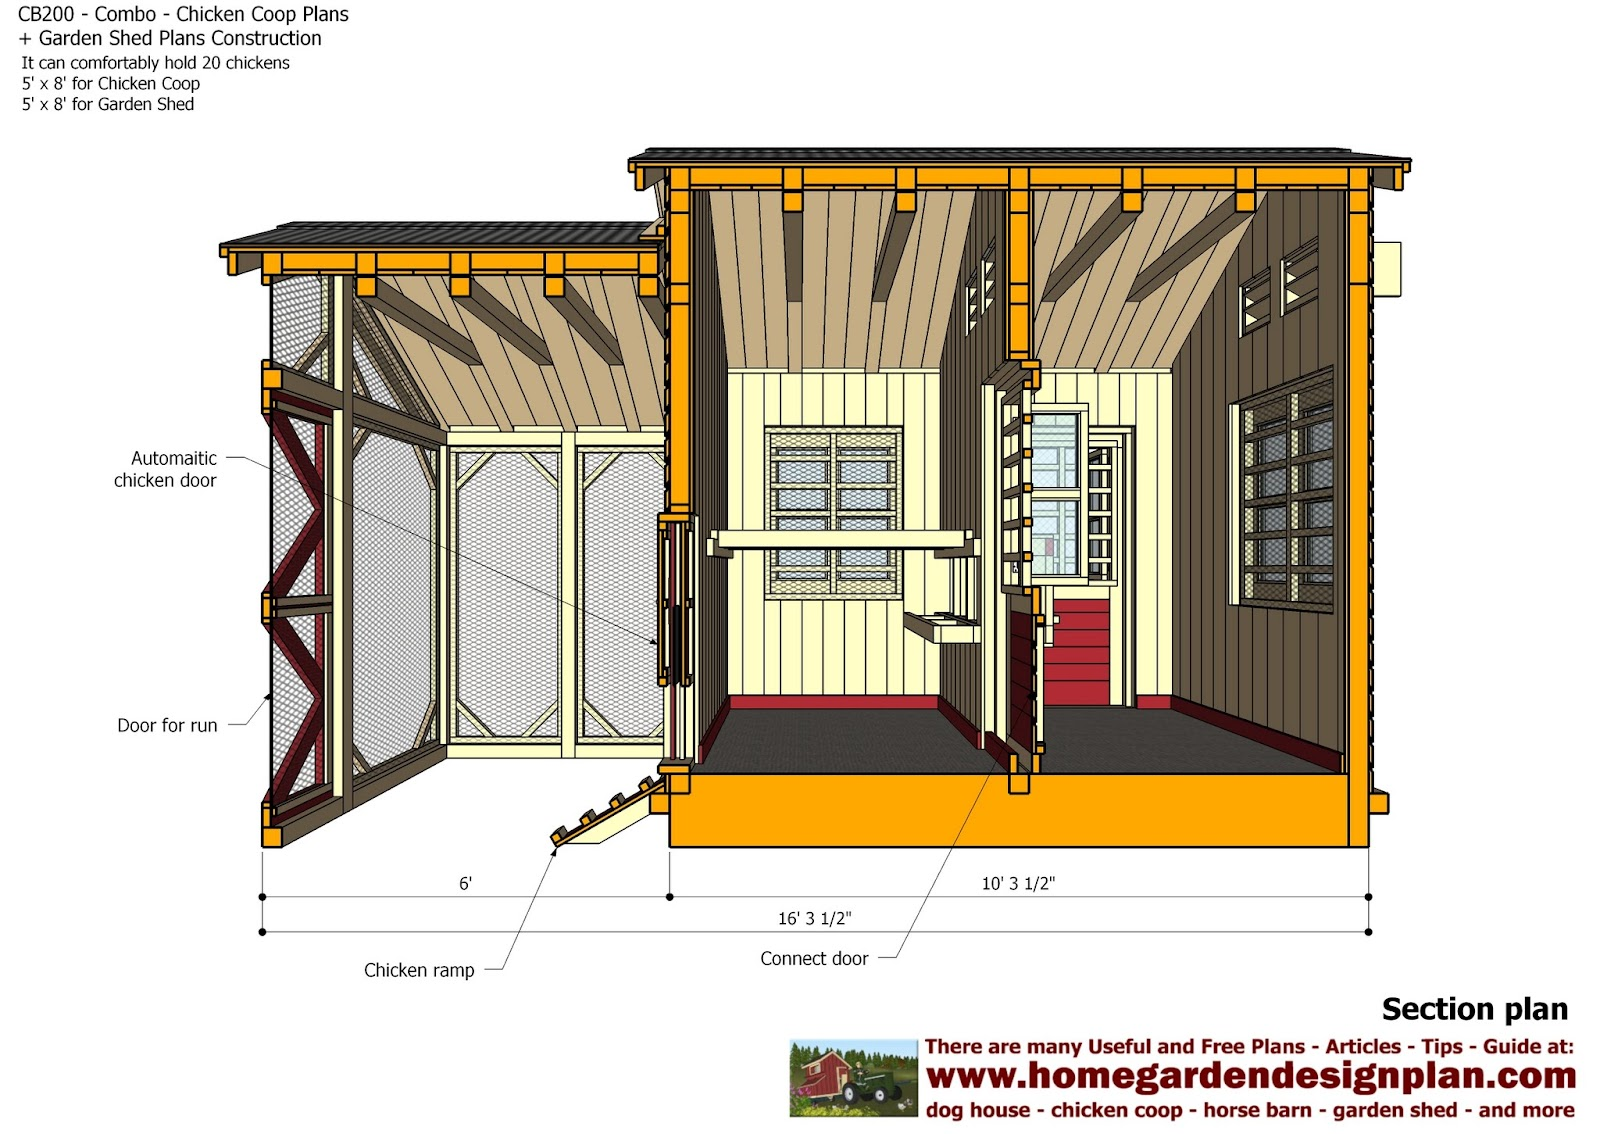 Shed Plans VIPOutdoor Storage Building Plans Shed Plans And Designs Is It